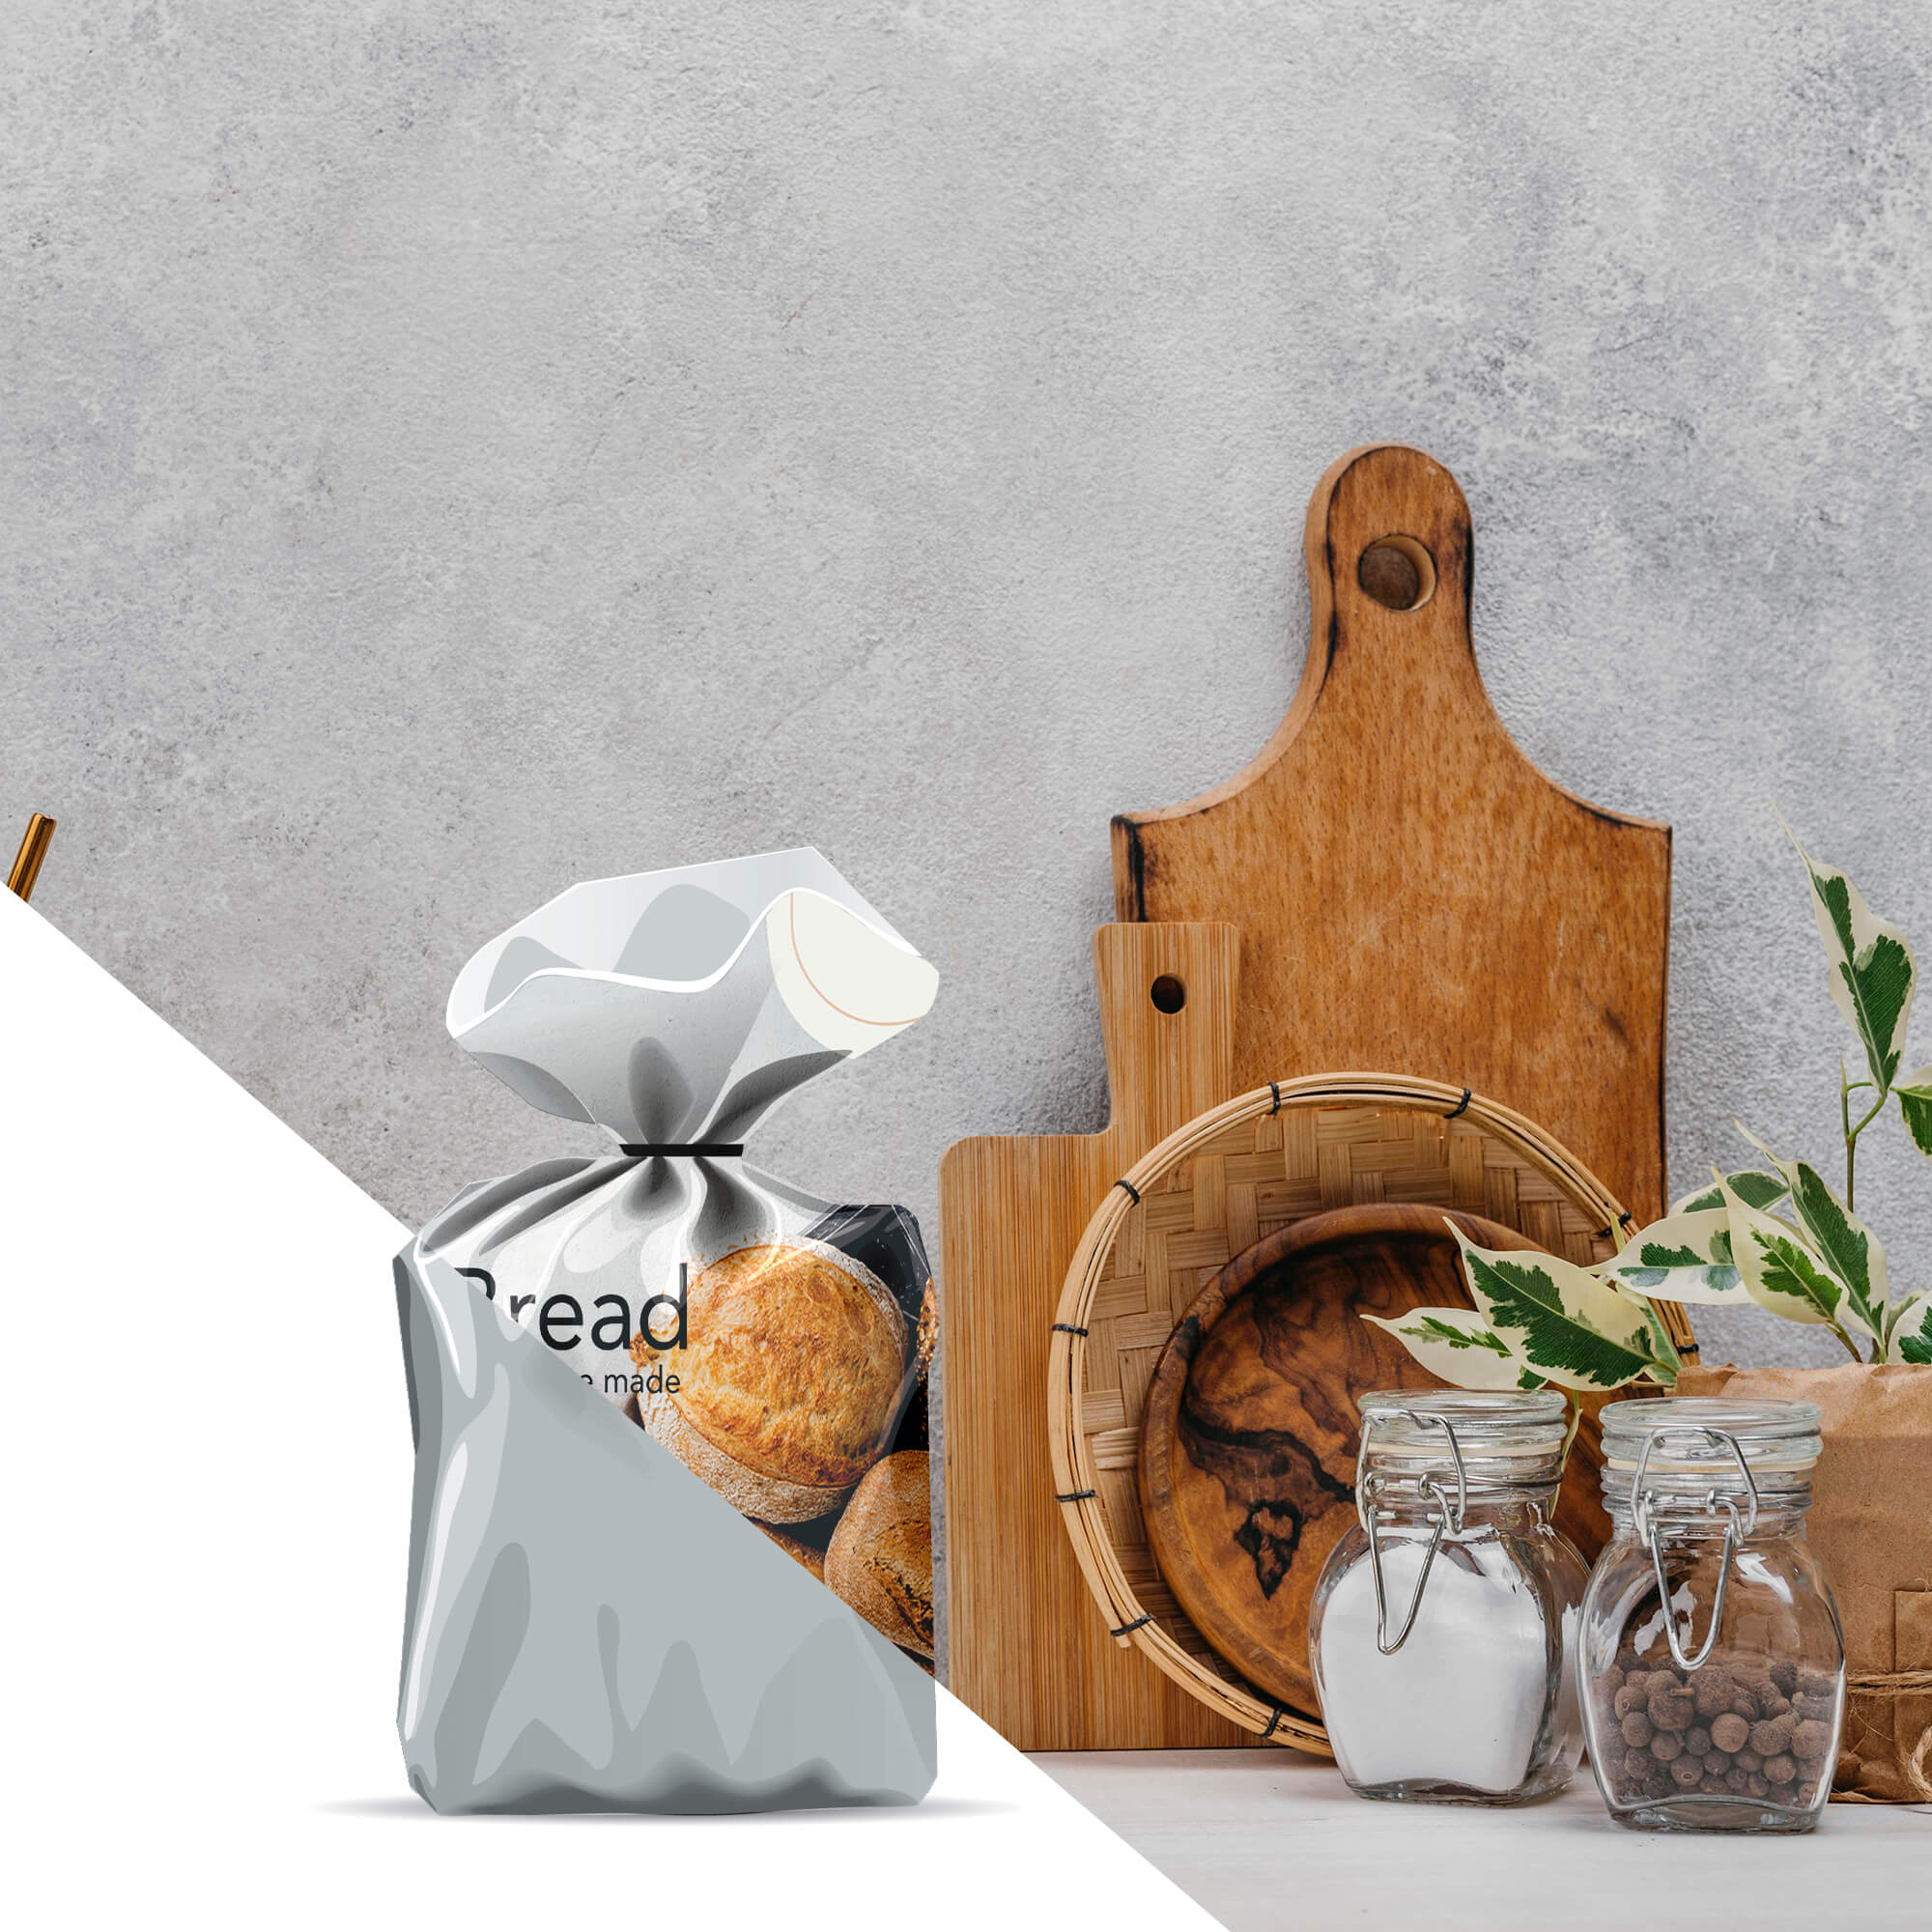 Editable Free Bread Bag Mockup PSD Template